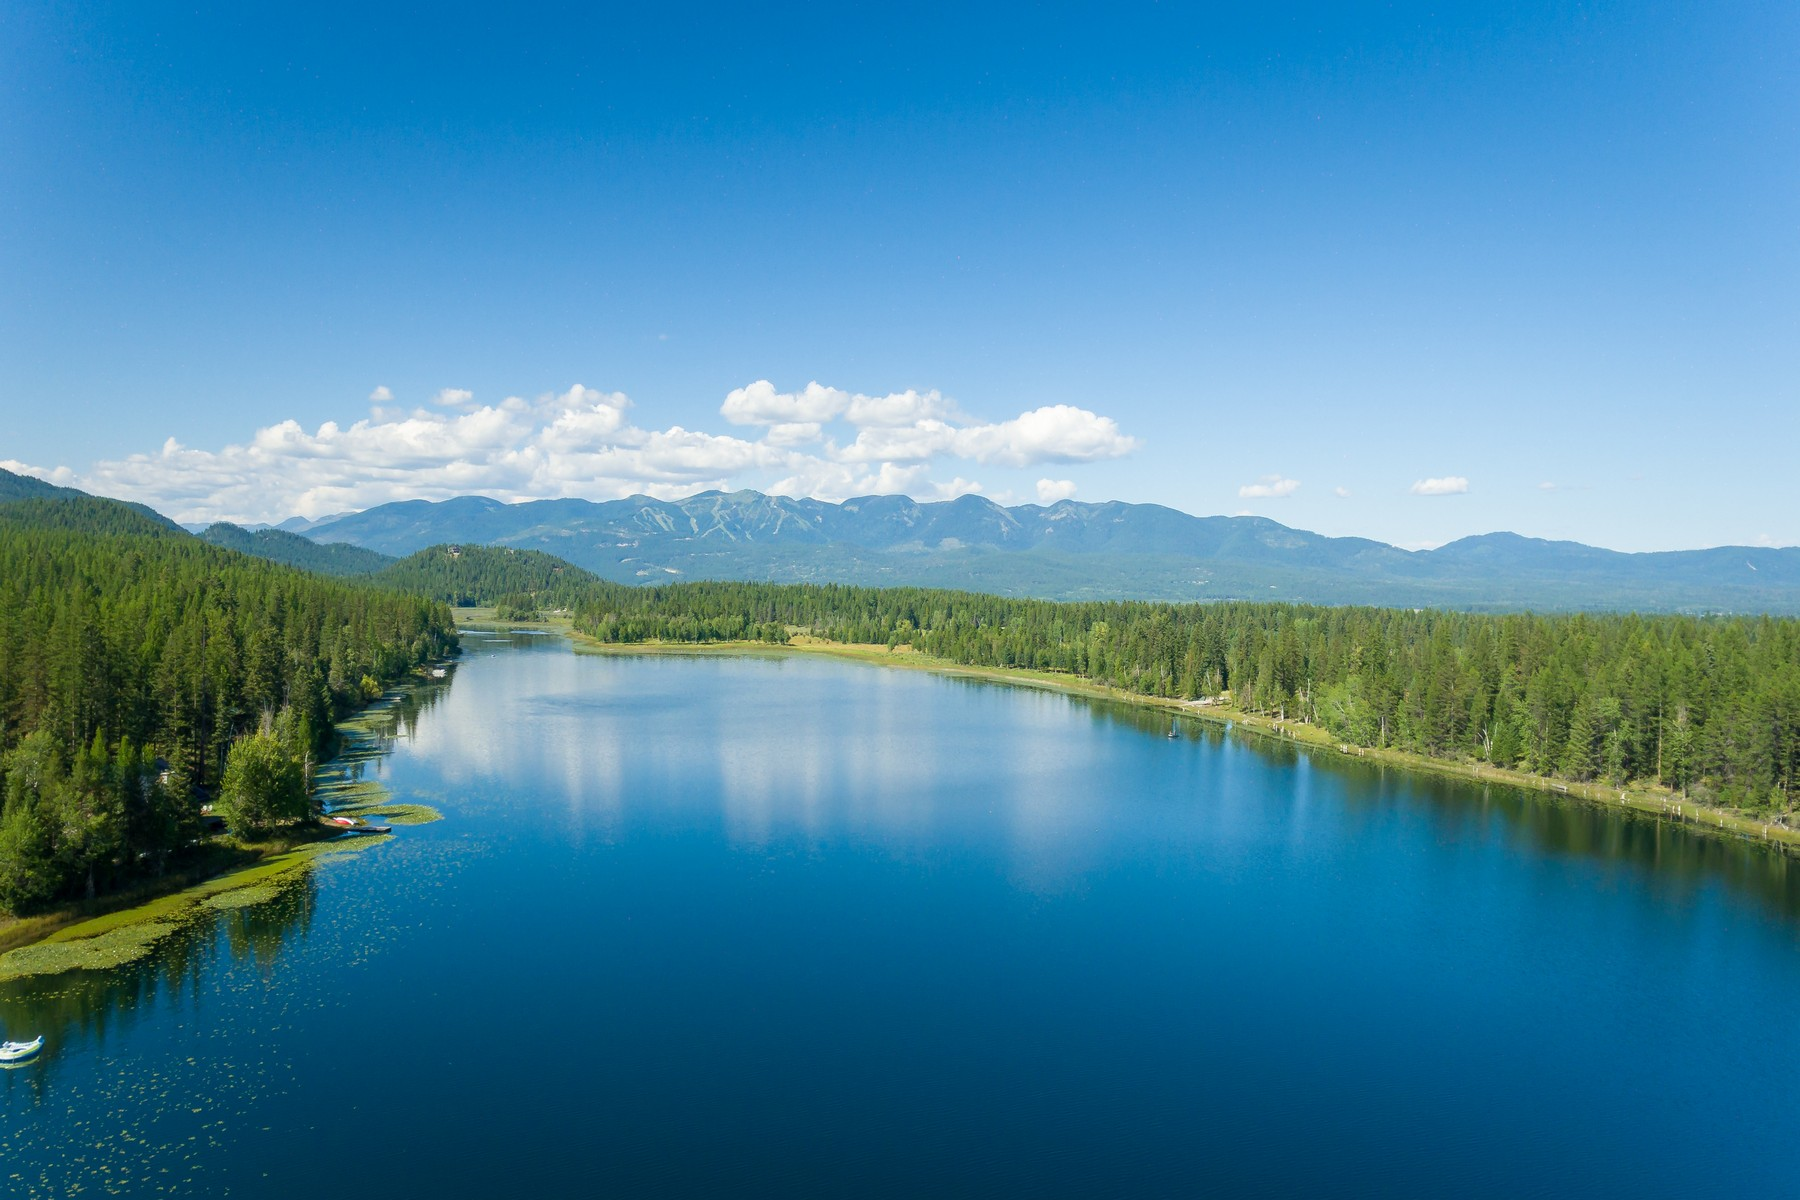 Land for Sale at 828 Whitefish Ranch Road, Lot 6, Whitefish, MT 599 828 Whitefish Ranch Rd Lot 6, Whitefish, Montana, 59937 United States